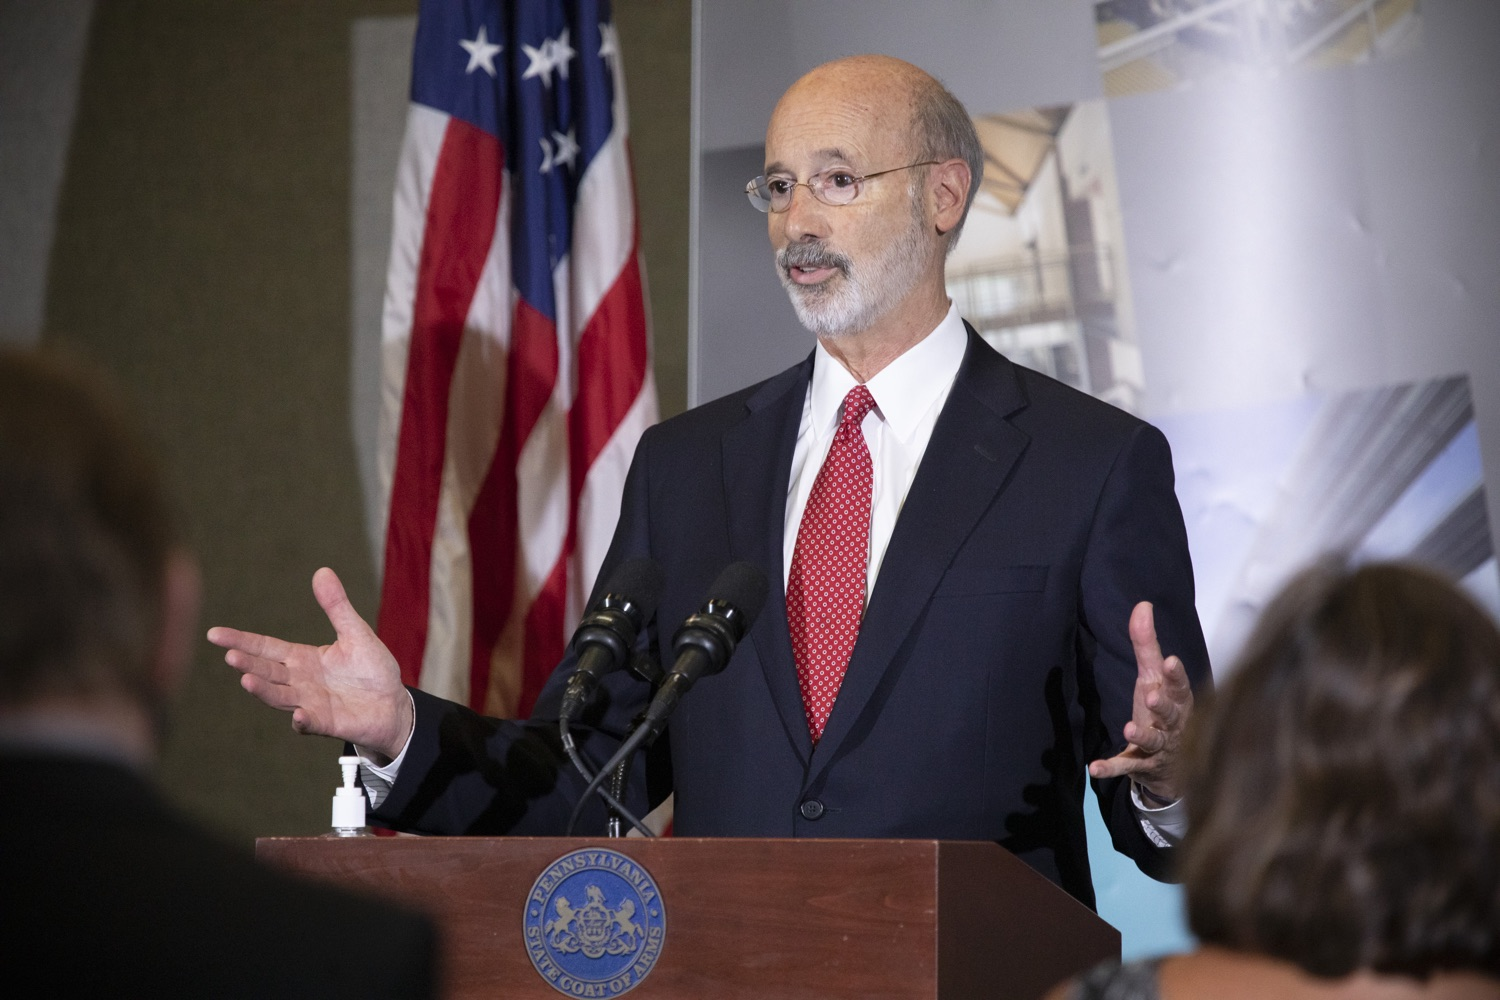 "<a href=""https://filesource.wostreaming.net/commonwealthofpa/photo/18250_gov_covidFunding_dz_005.jpg"" target=""_blank"">⇣ Download Photo<br></a>Pennsylvania Governor Tom Wolf speaking to the press.  As small businesses continue to feel an economic impact of the COVID-19 public health crisis, Governor Tom Wolf today called on the General Assembly to provide additional funding to support these businesses. The governor was joined by the York County Economic Alliance, local elected officials and business advocates.  York, PA  September 10, 2020"